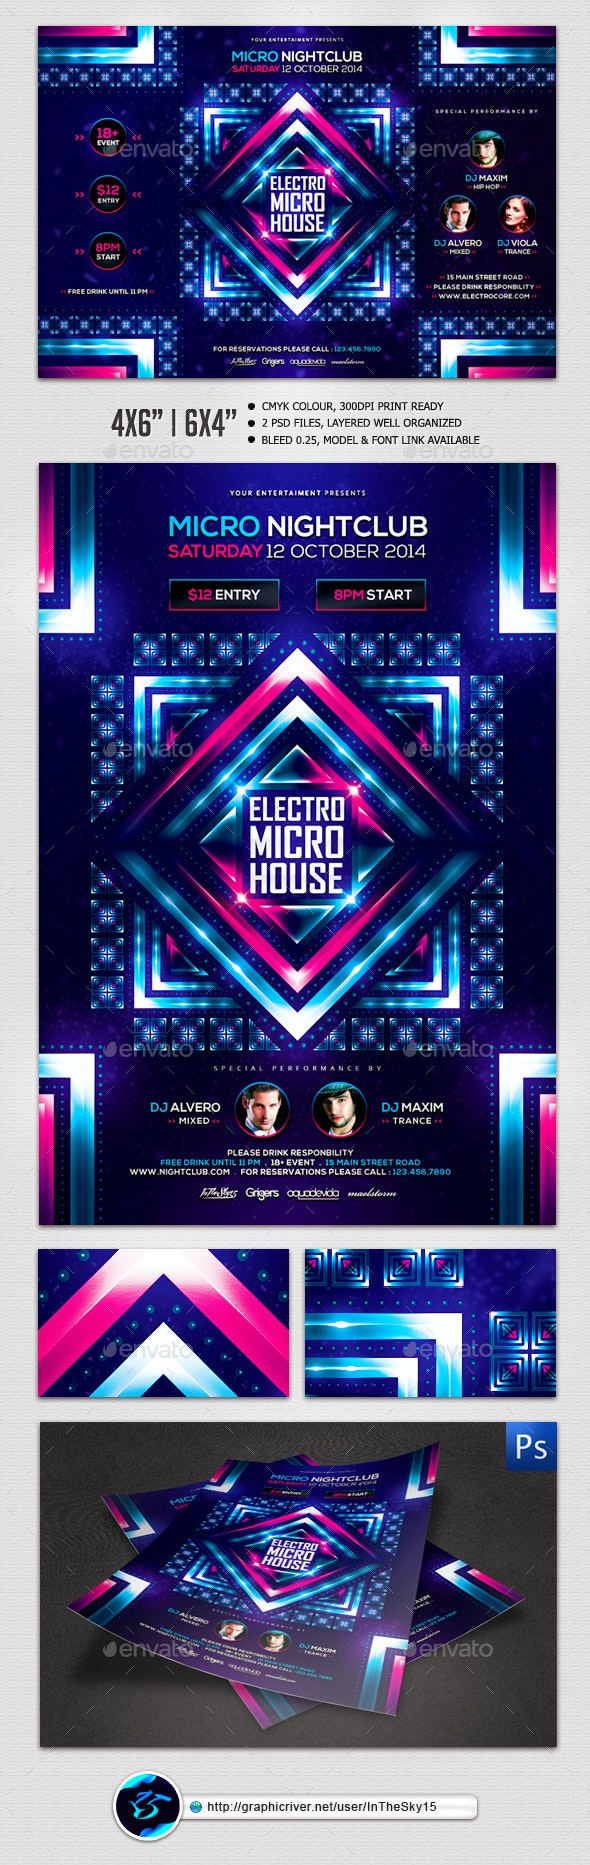 Electro Micro House Flyer Template - Flyers Print Templates